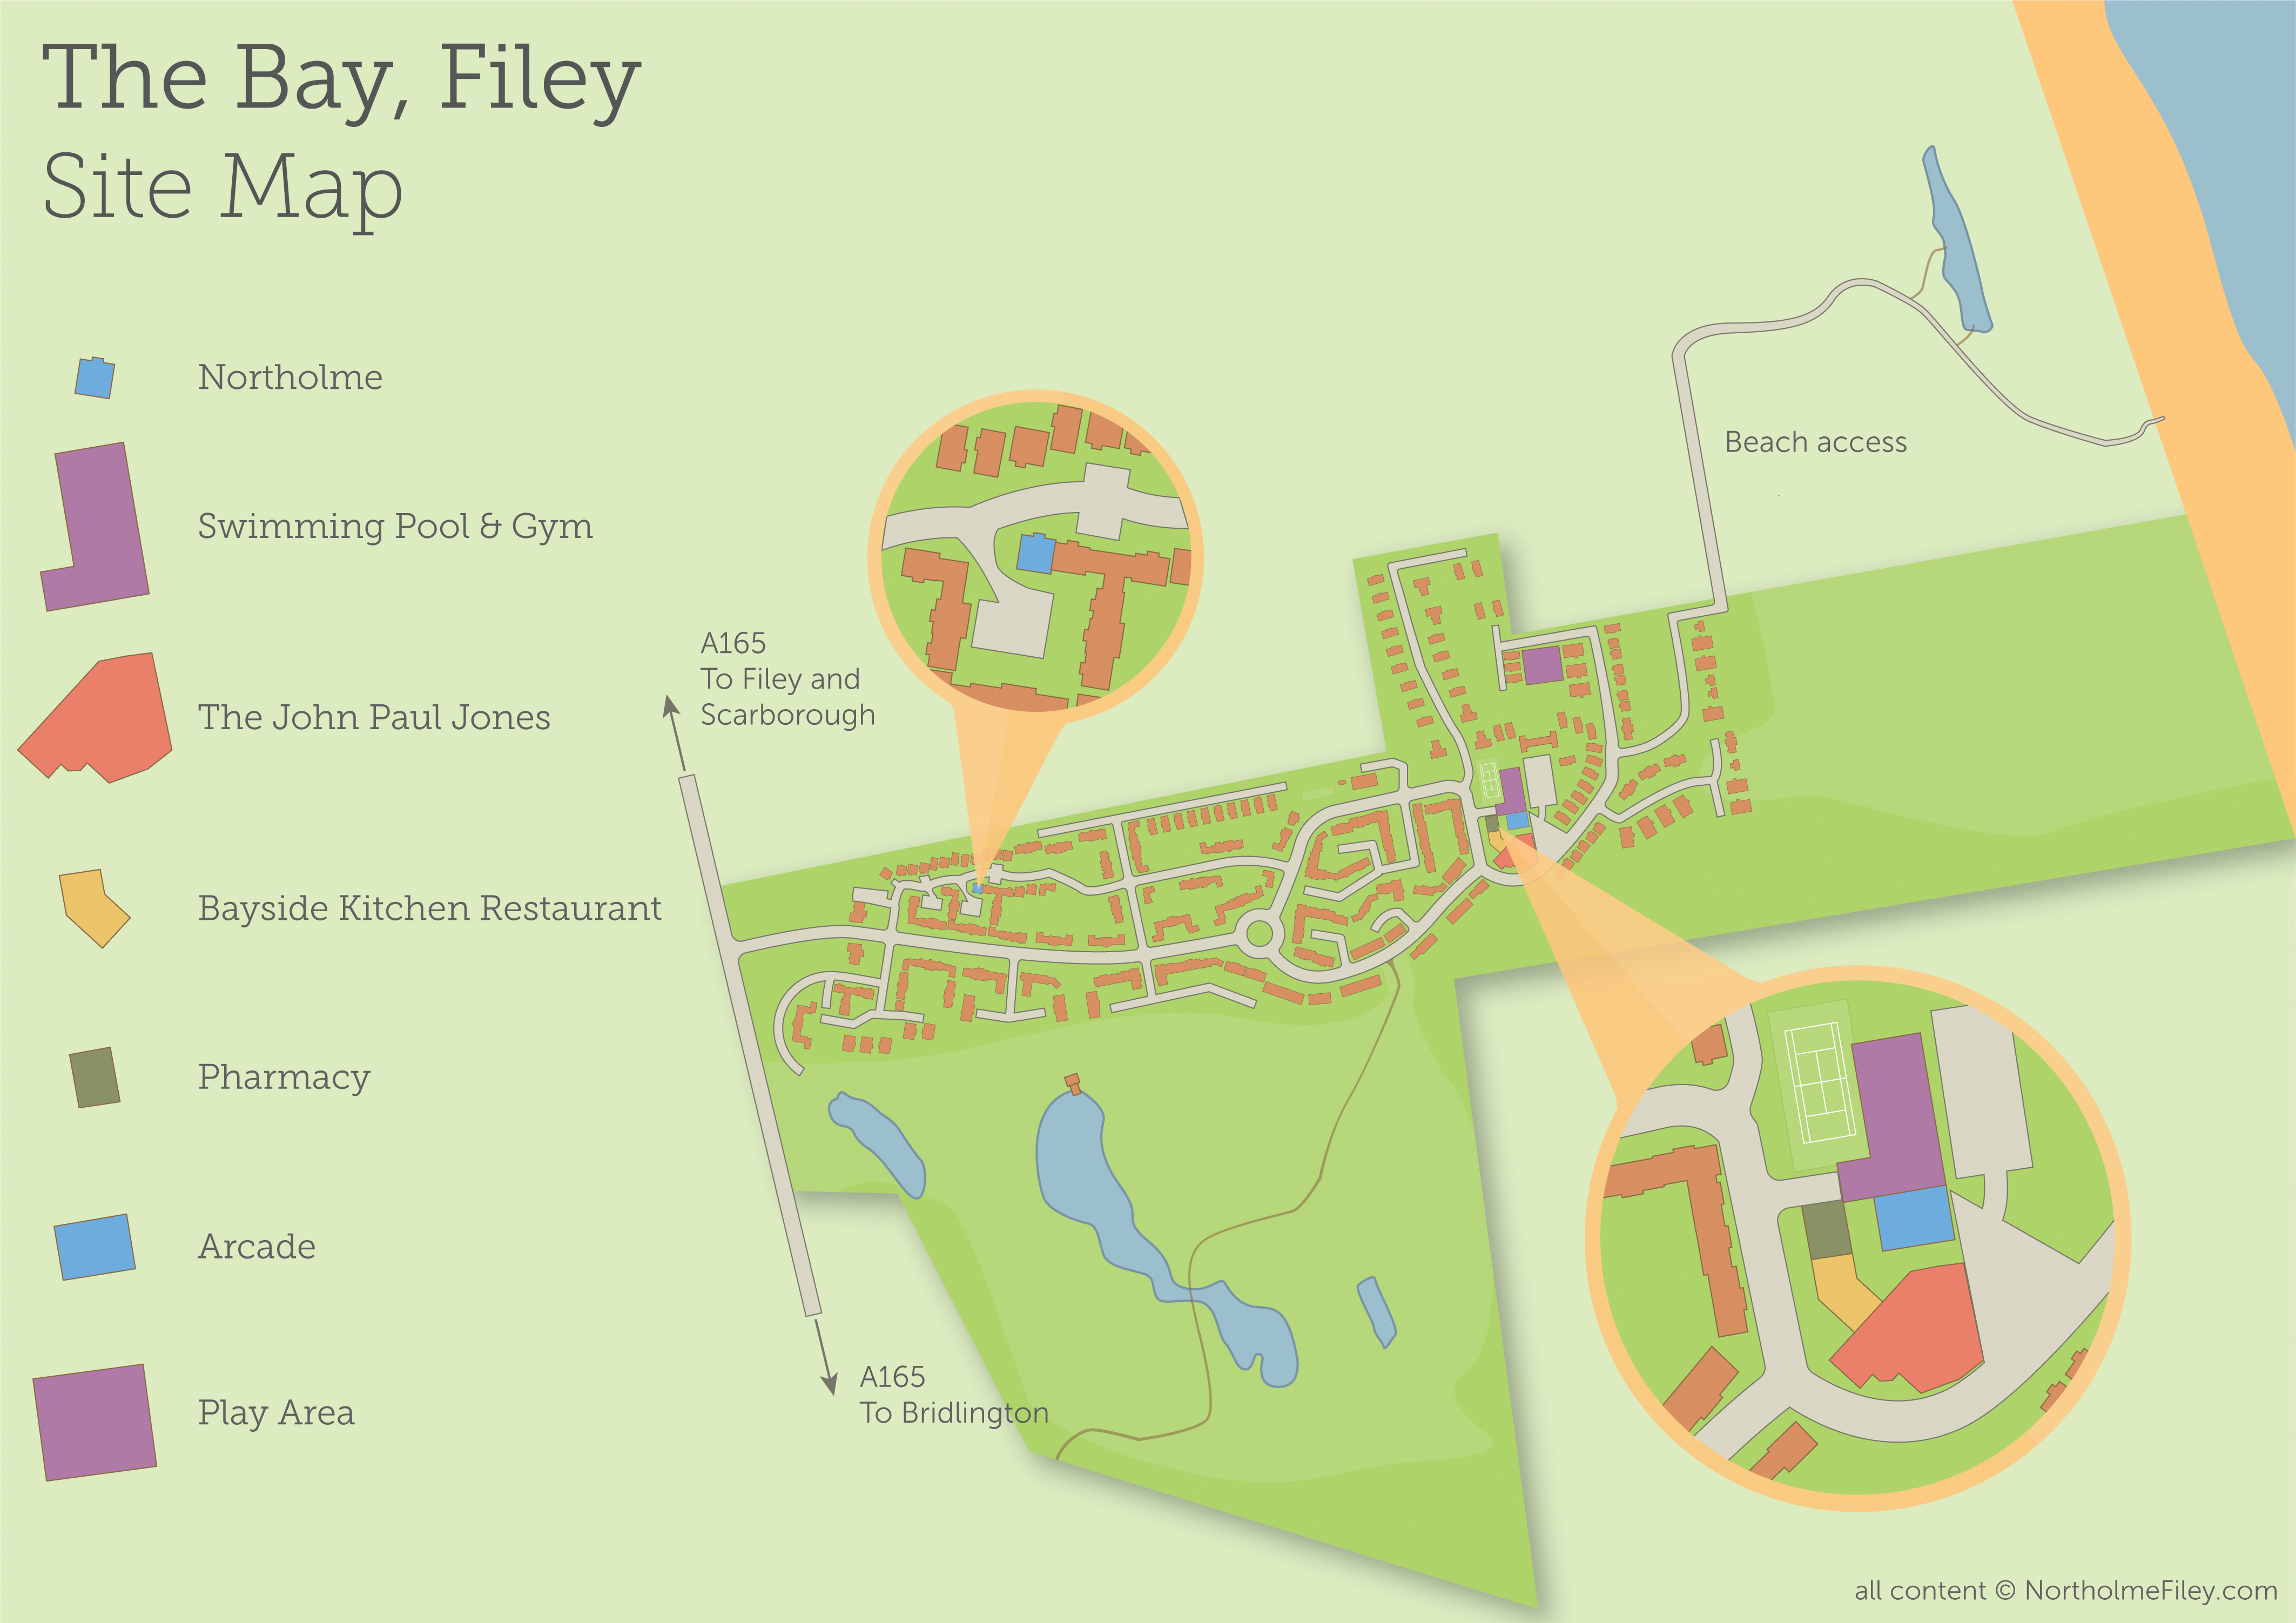 The Bay Filey Site Map - Northolme self catering cottage yorkshire Update 2018   NortholmeFiley.com